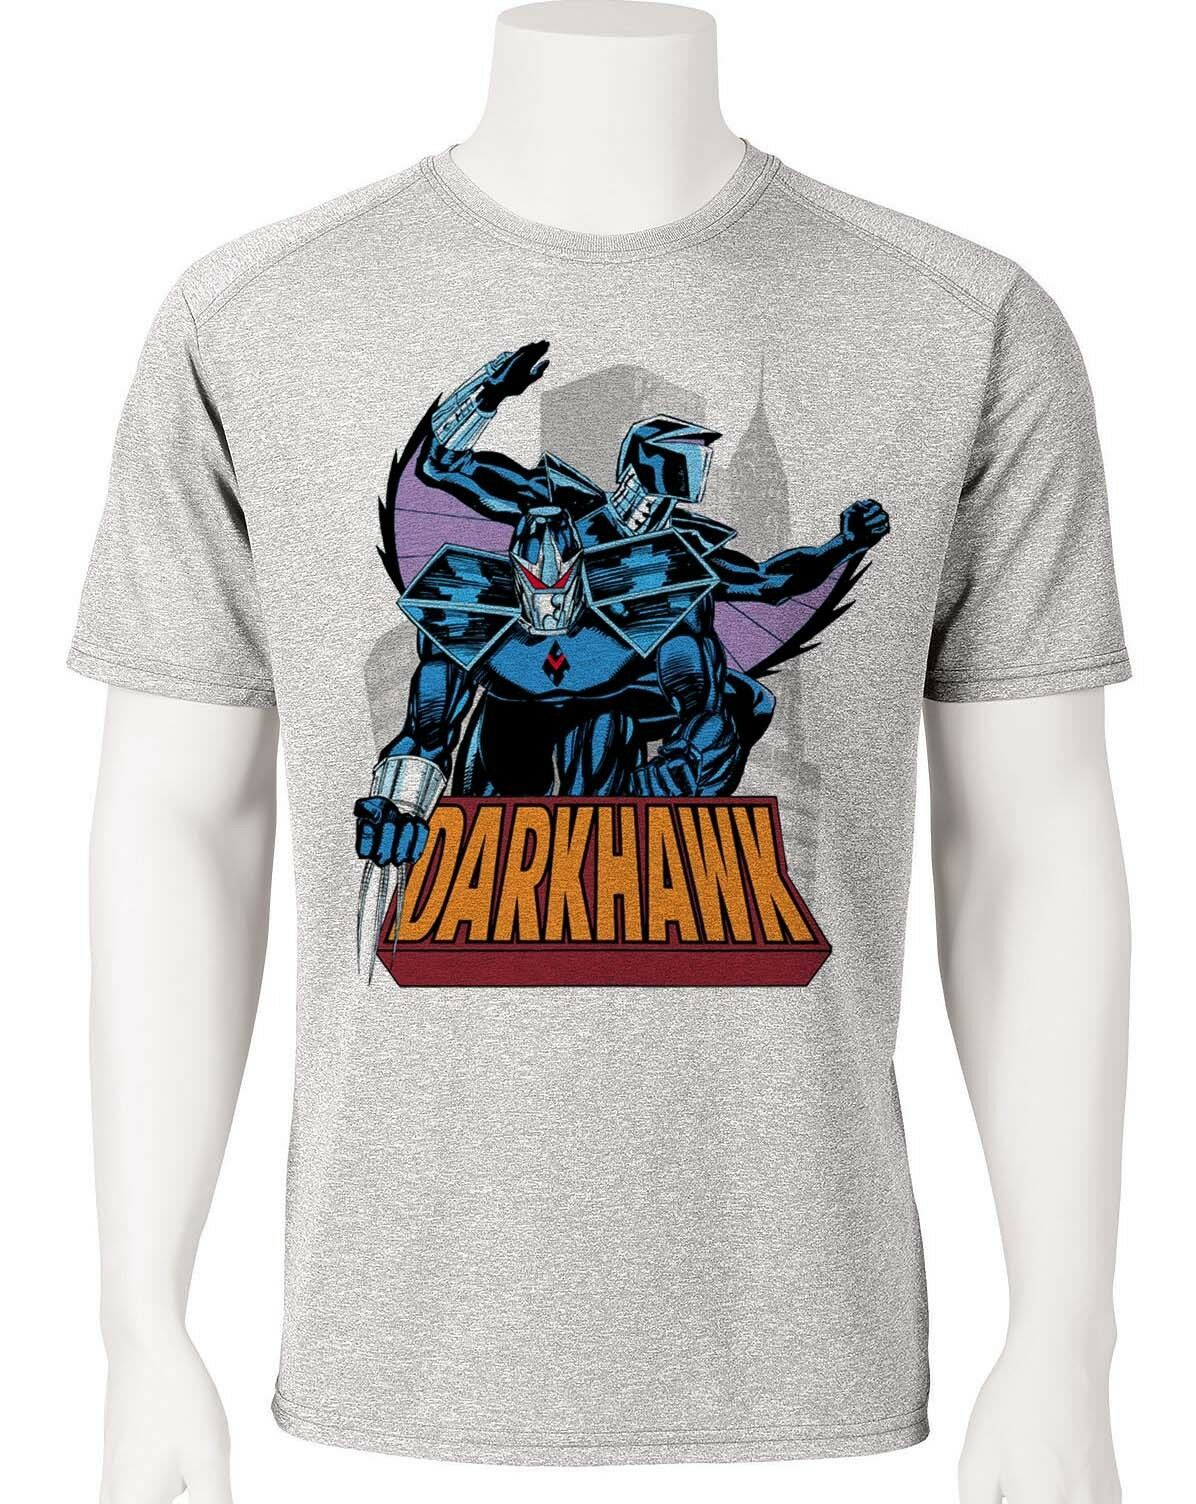 Darkhawk Dri Fit graphic Tshirt moisture wicking superhero comic book SPF tee